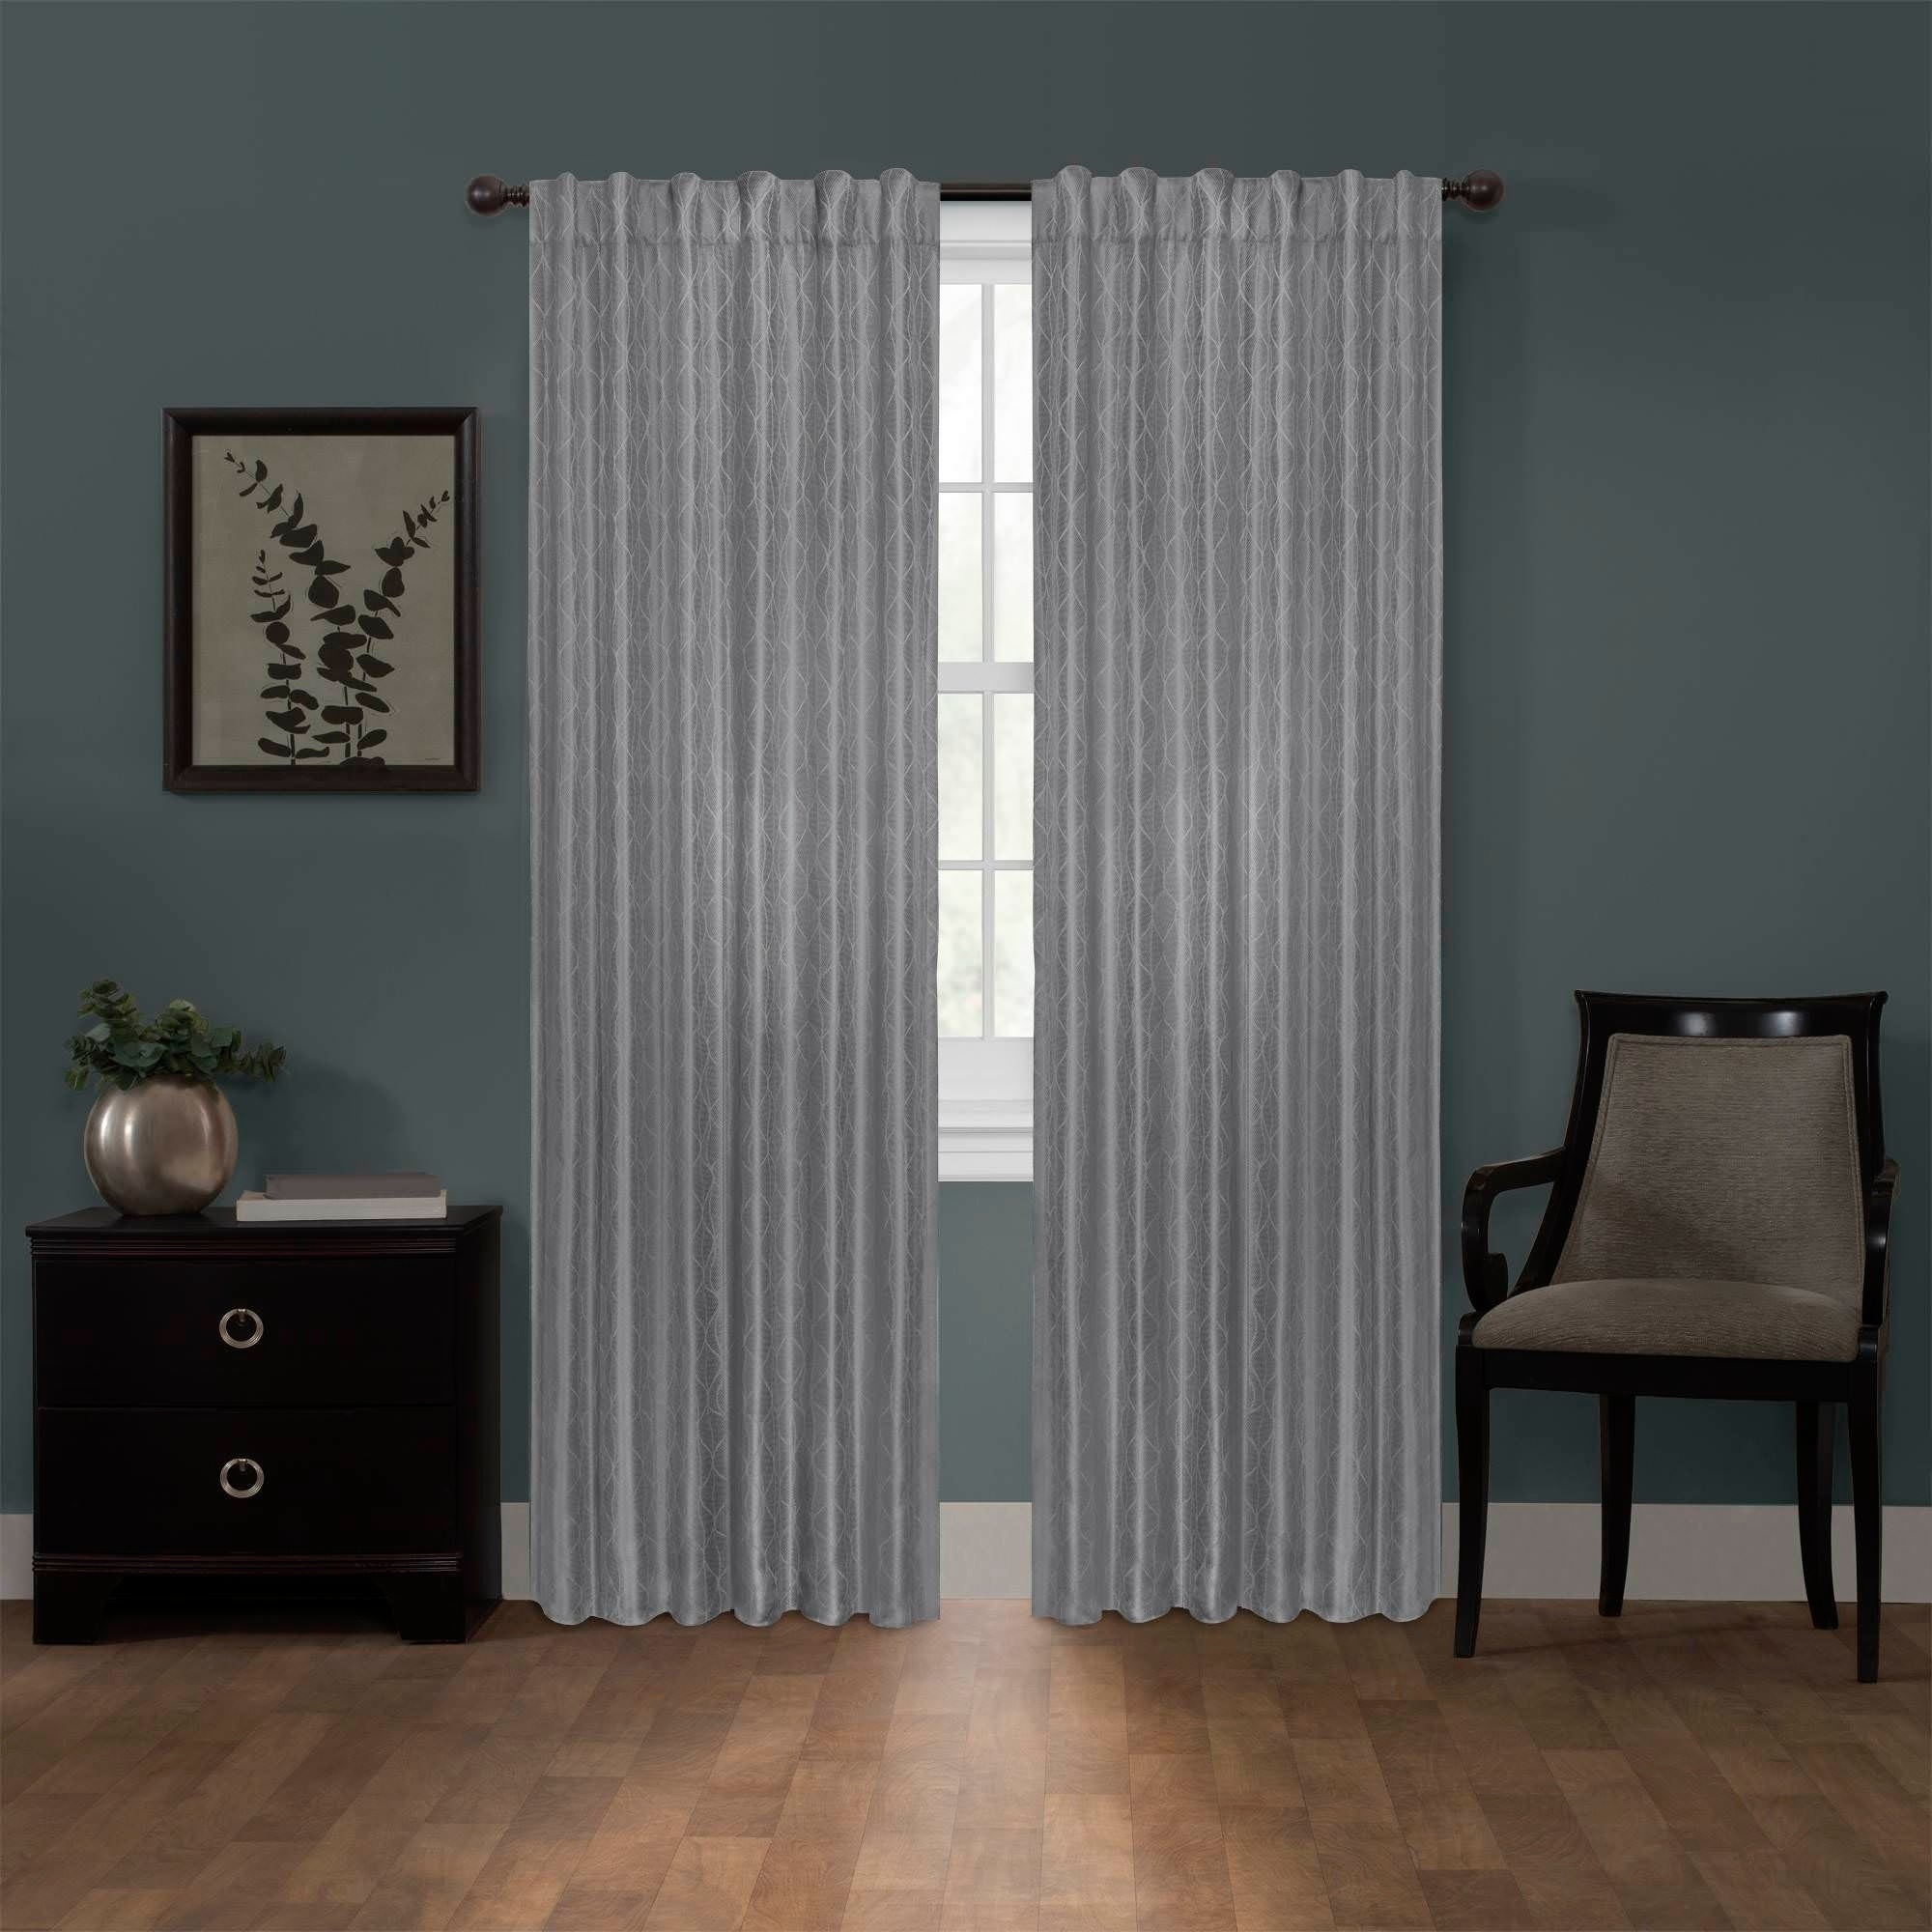 shop ainsley blackout platinum smart curtains window curtain panel 50 x 84 50 x 84 on sale free shipping today overstockcom 19456426 - Smart Curtains